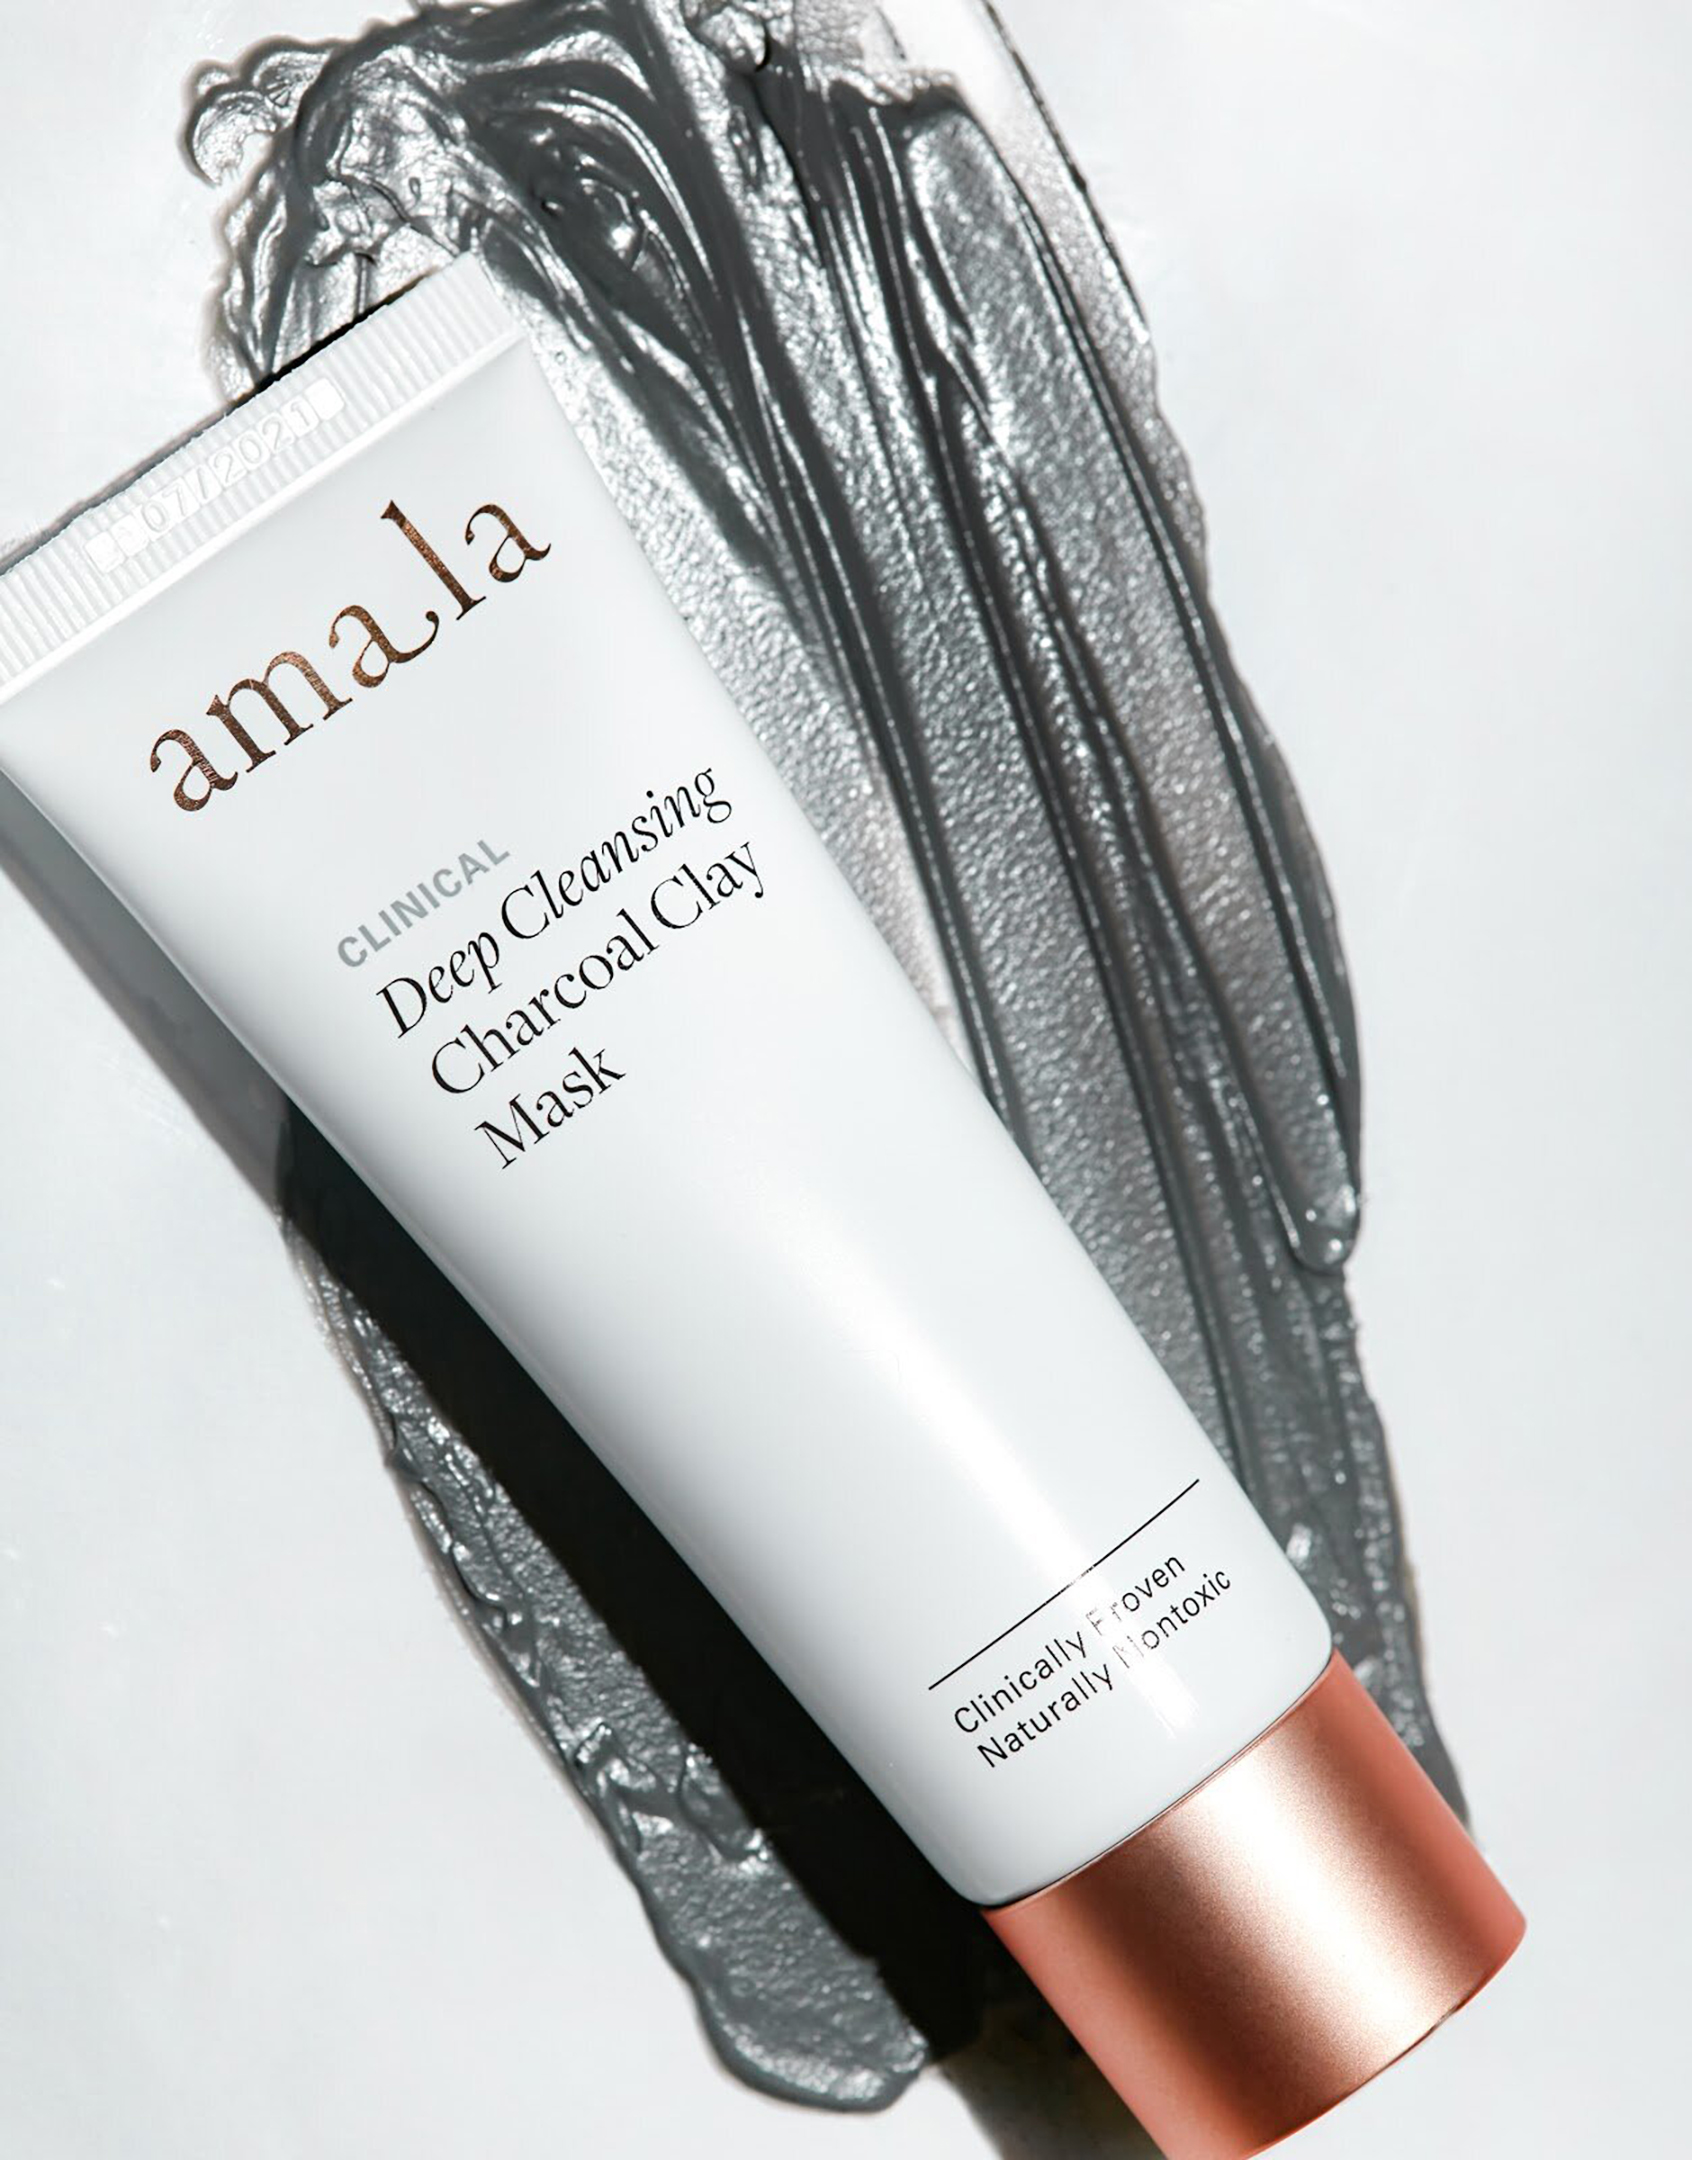 deep cleansing charcoal clay mask, amala